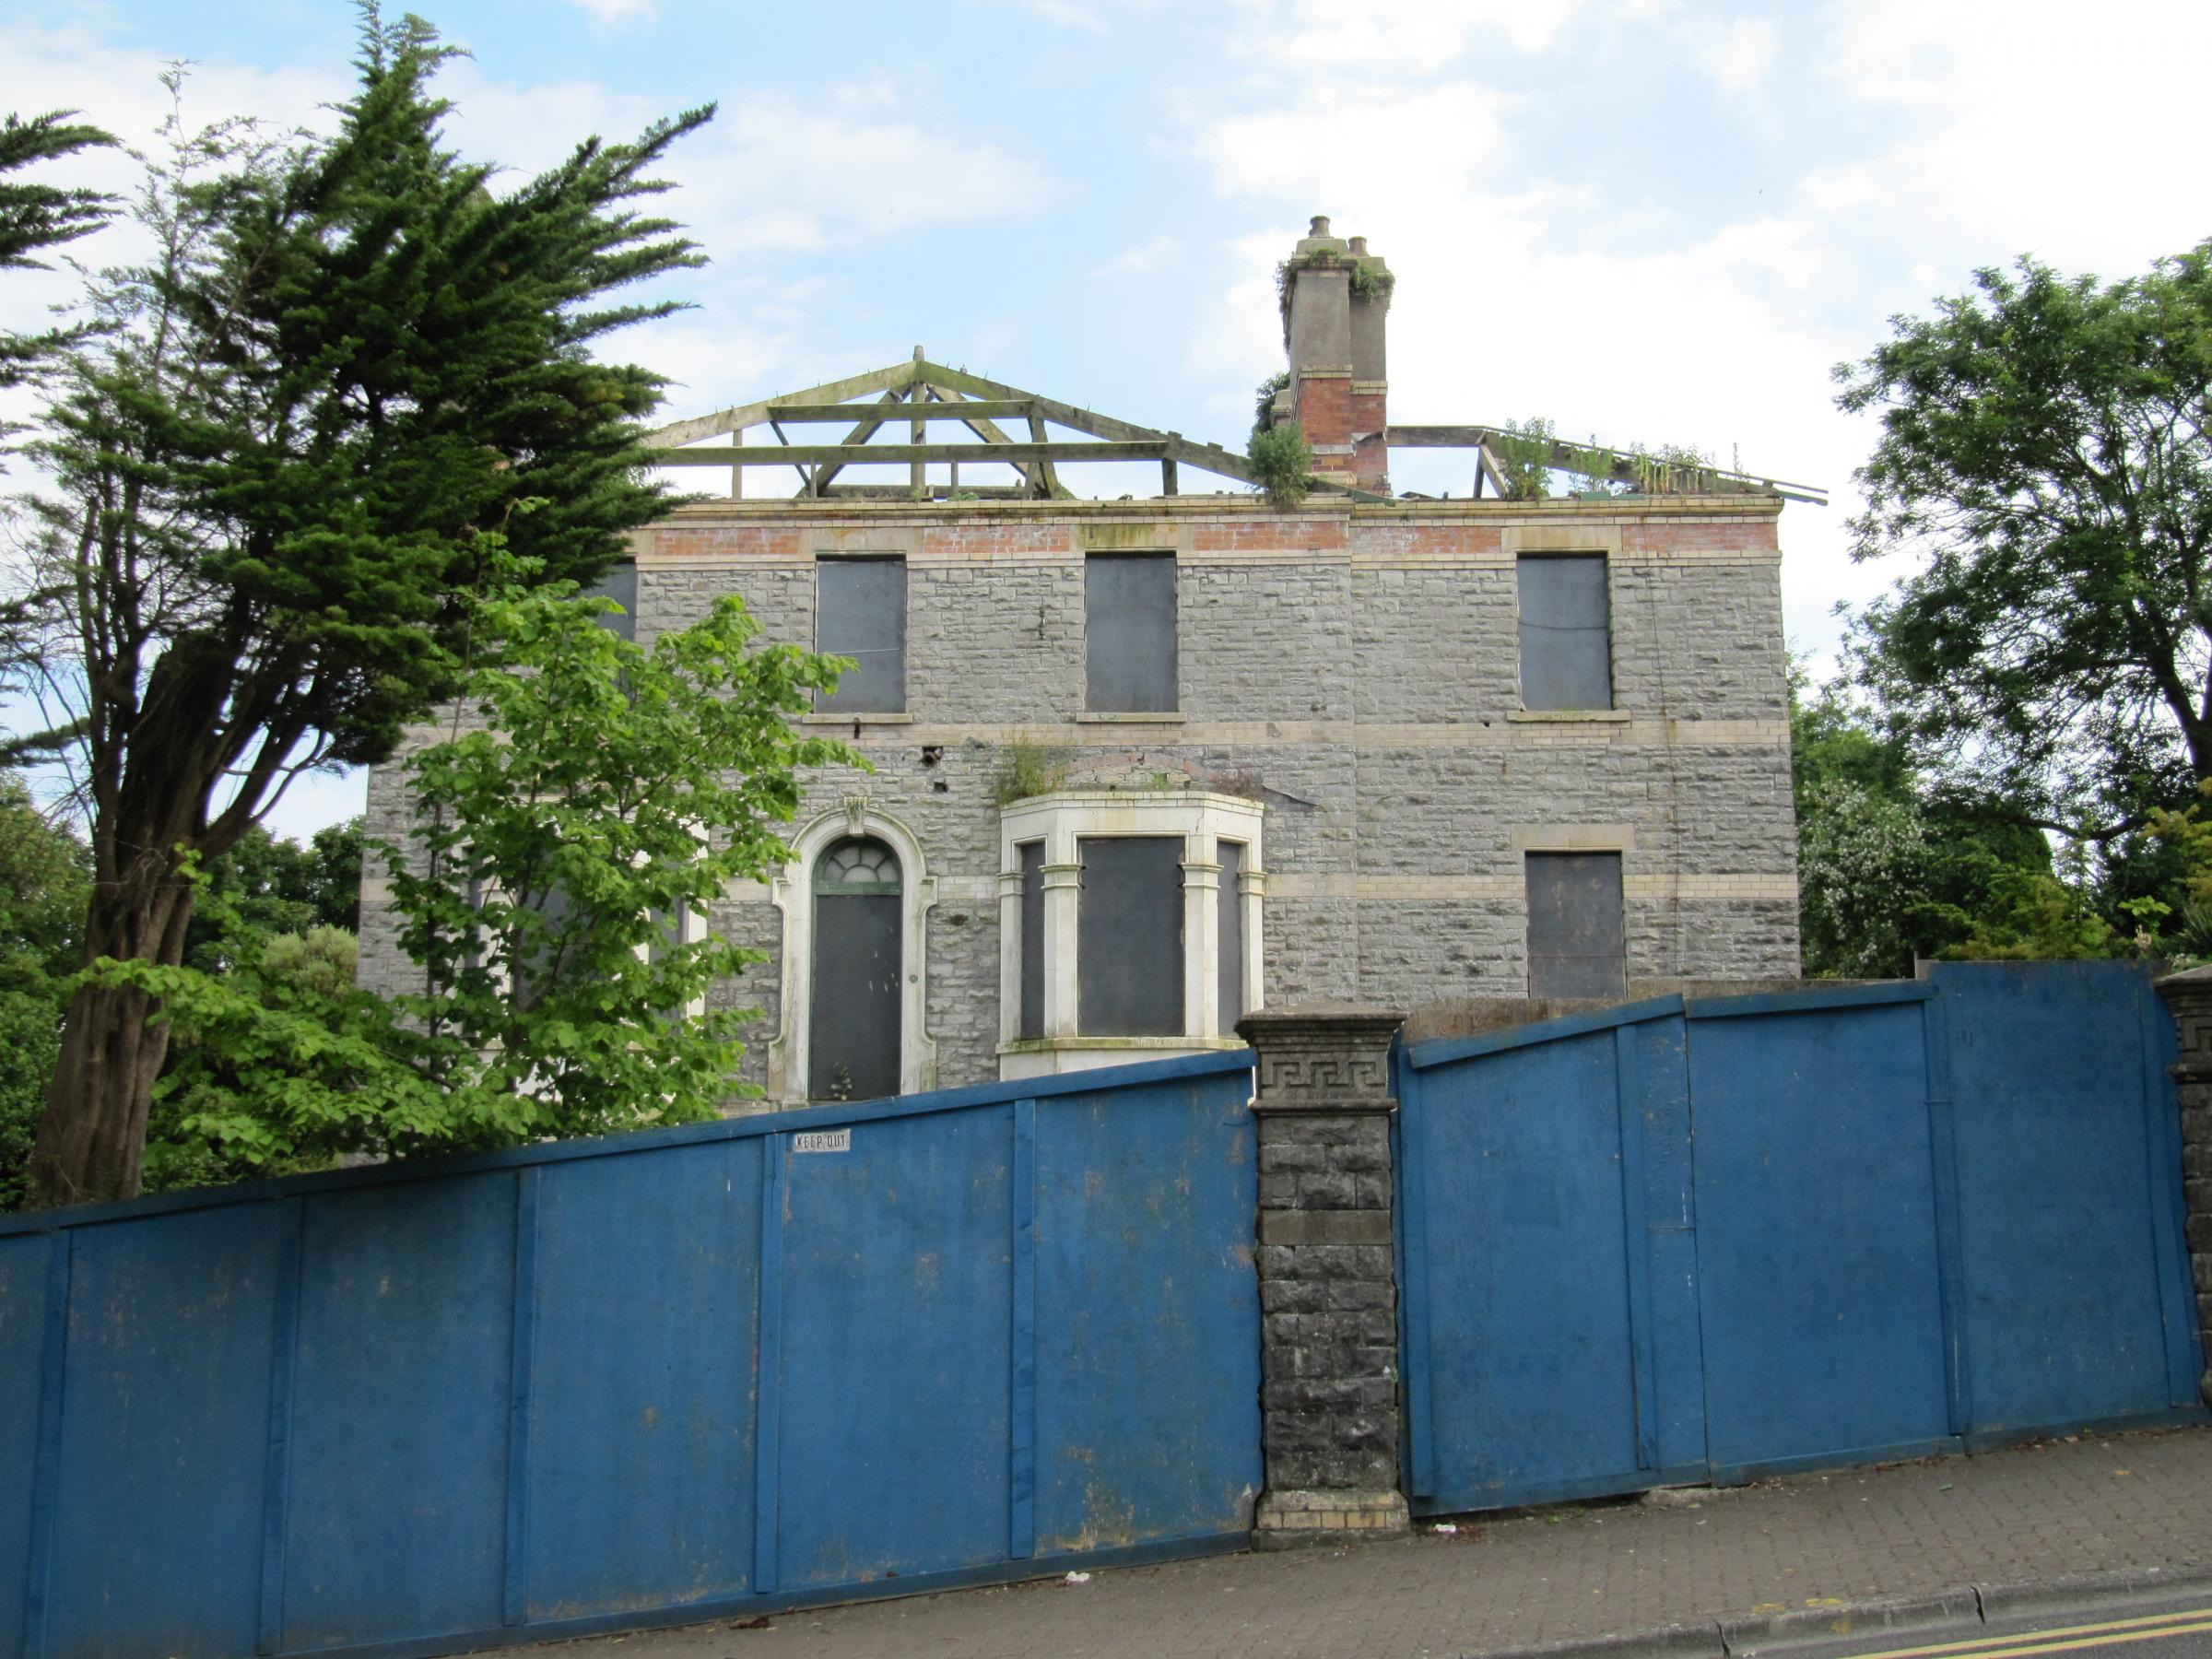 Owner of Penarth's iconic Normandy house fined for failing to carry out building work